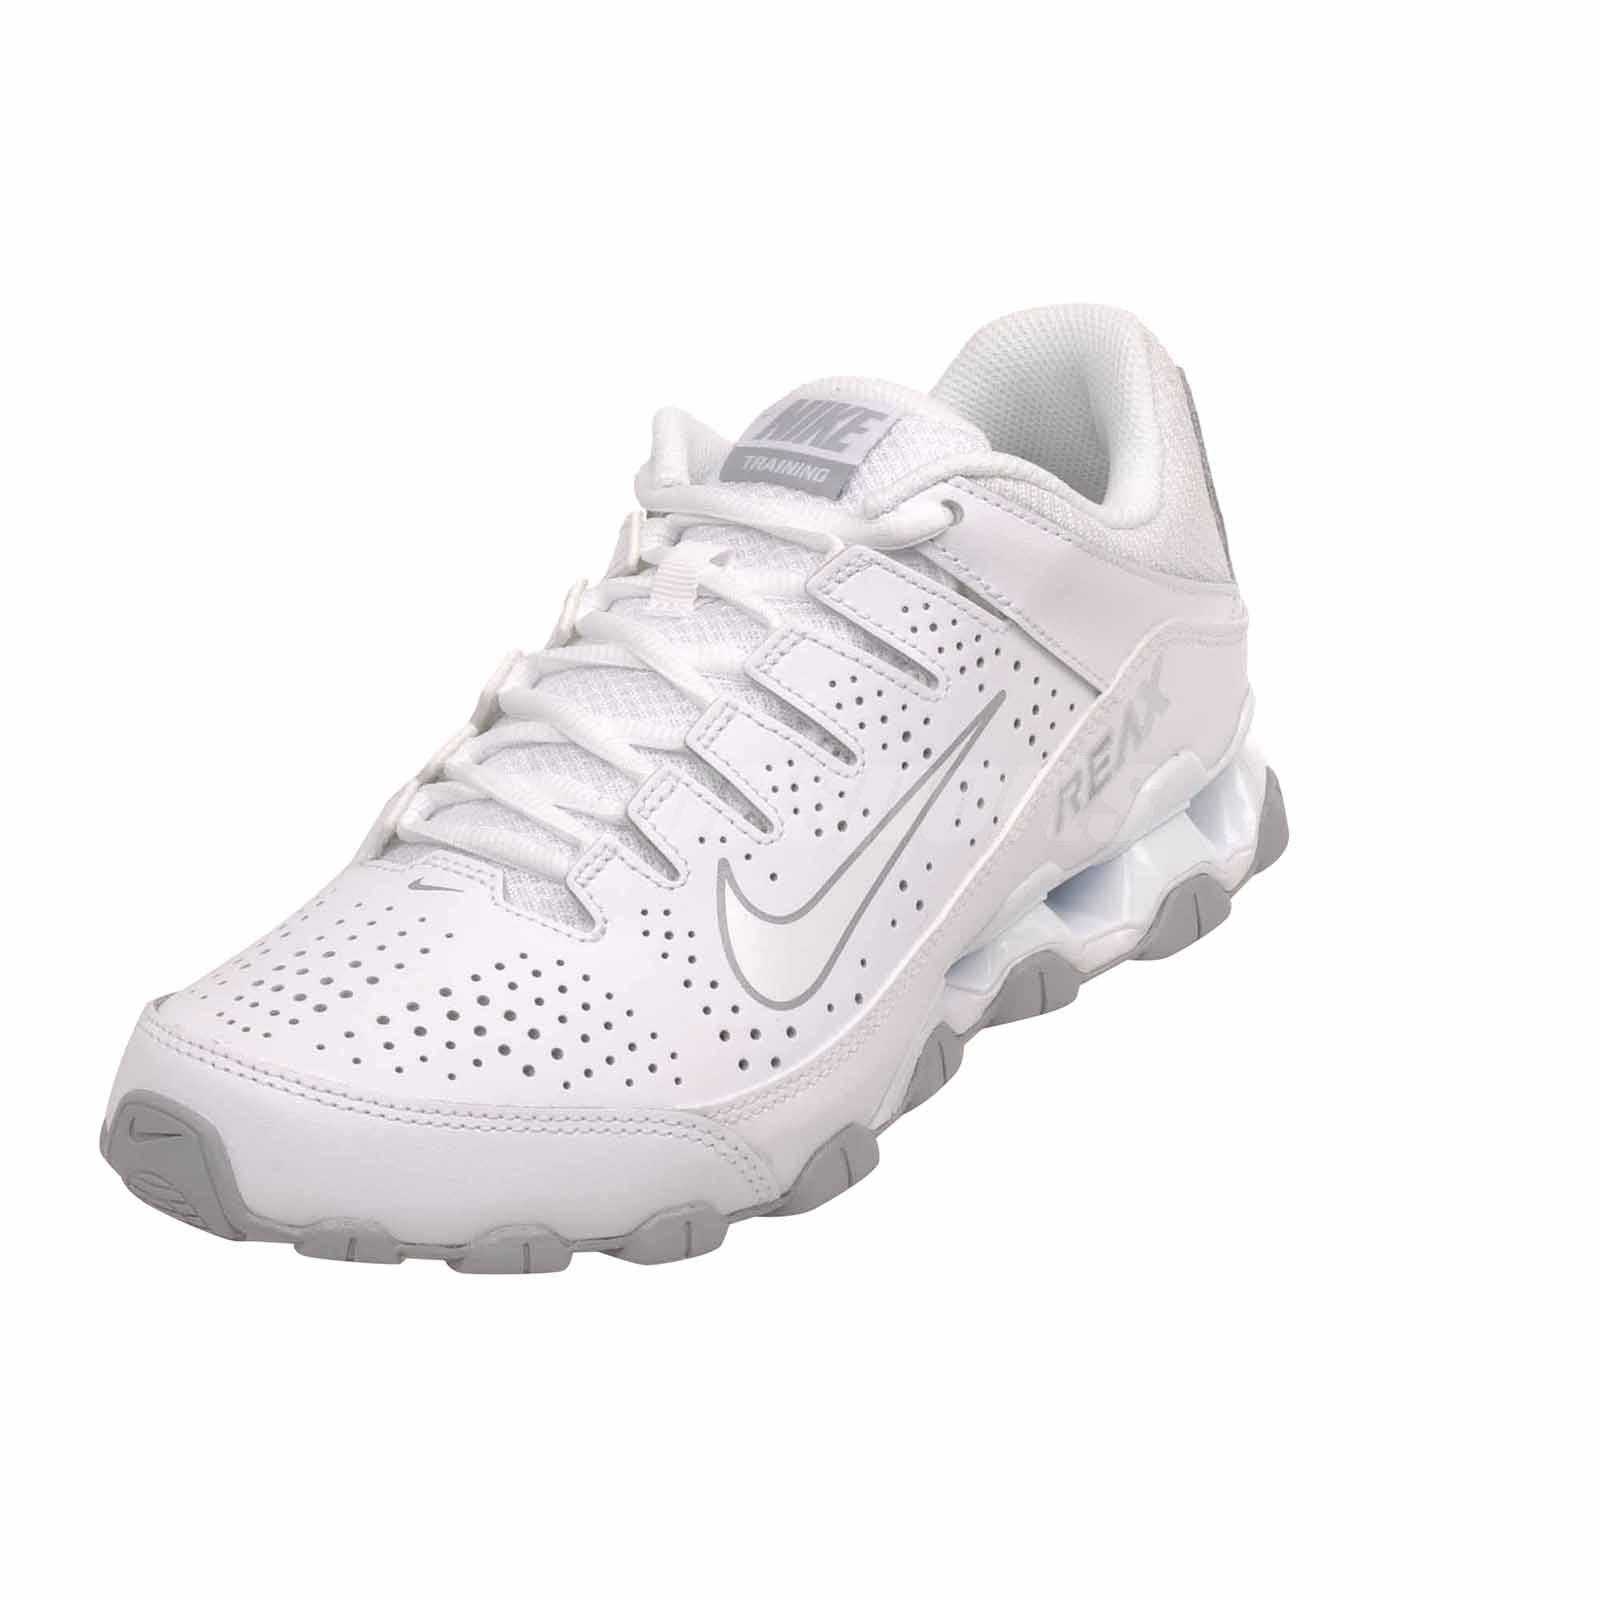 be2a59235d0 Nike Reax 8 TR Cross Training Mens Trainers Shoes White 616272-101 ...